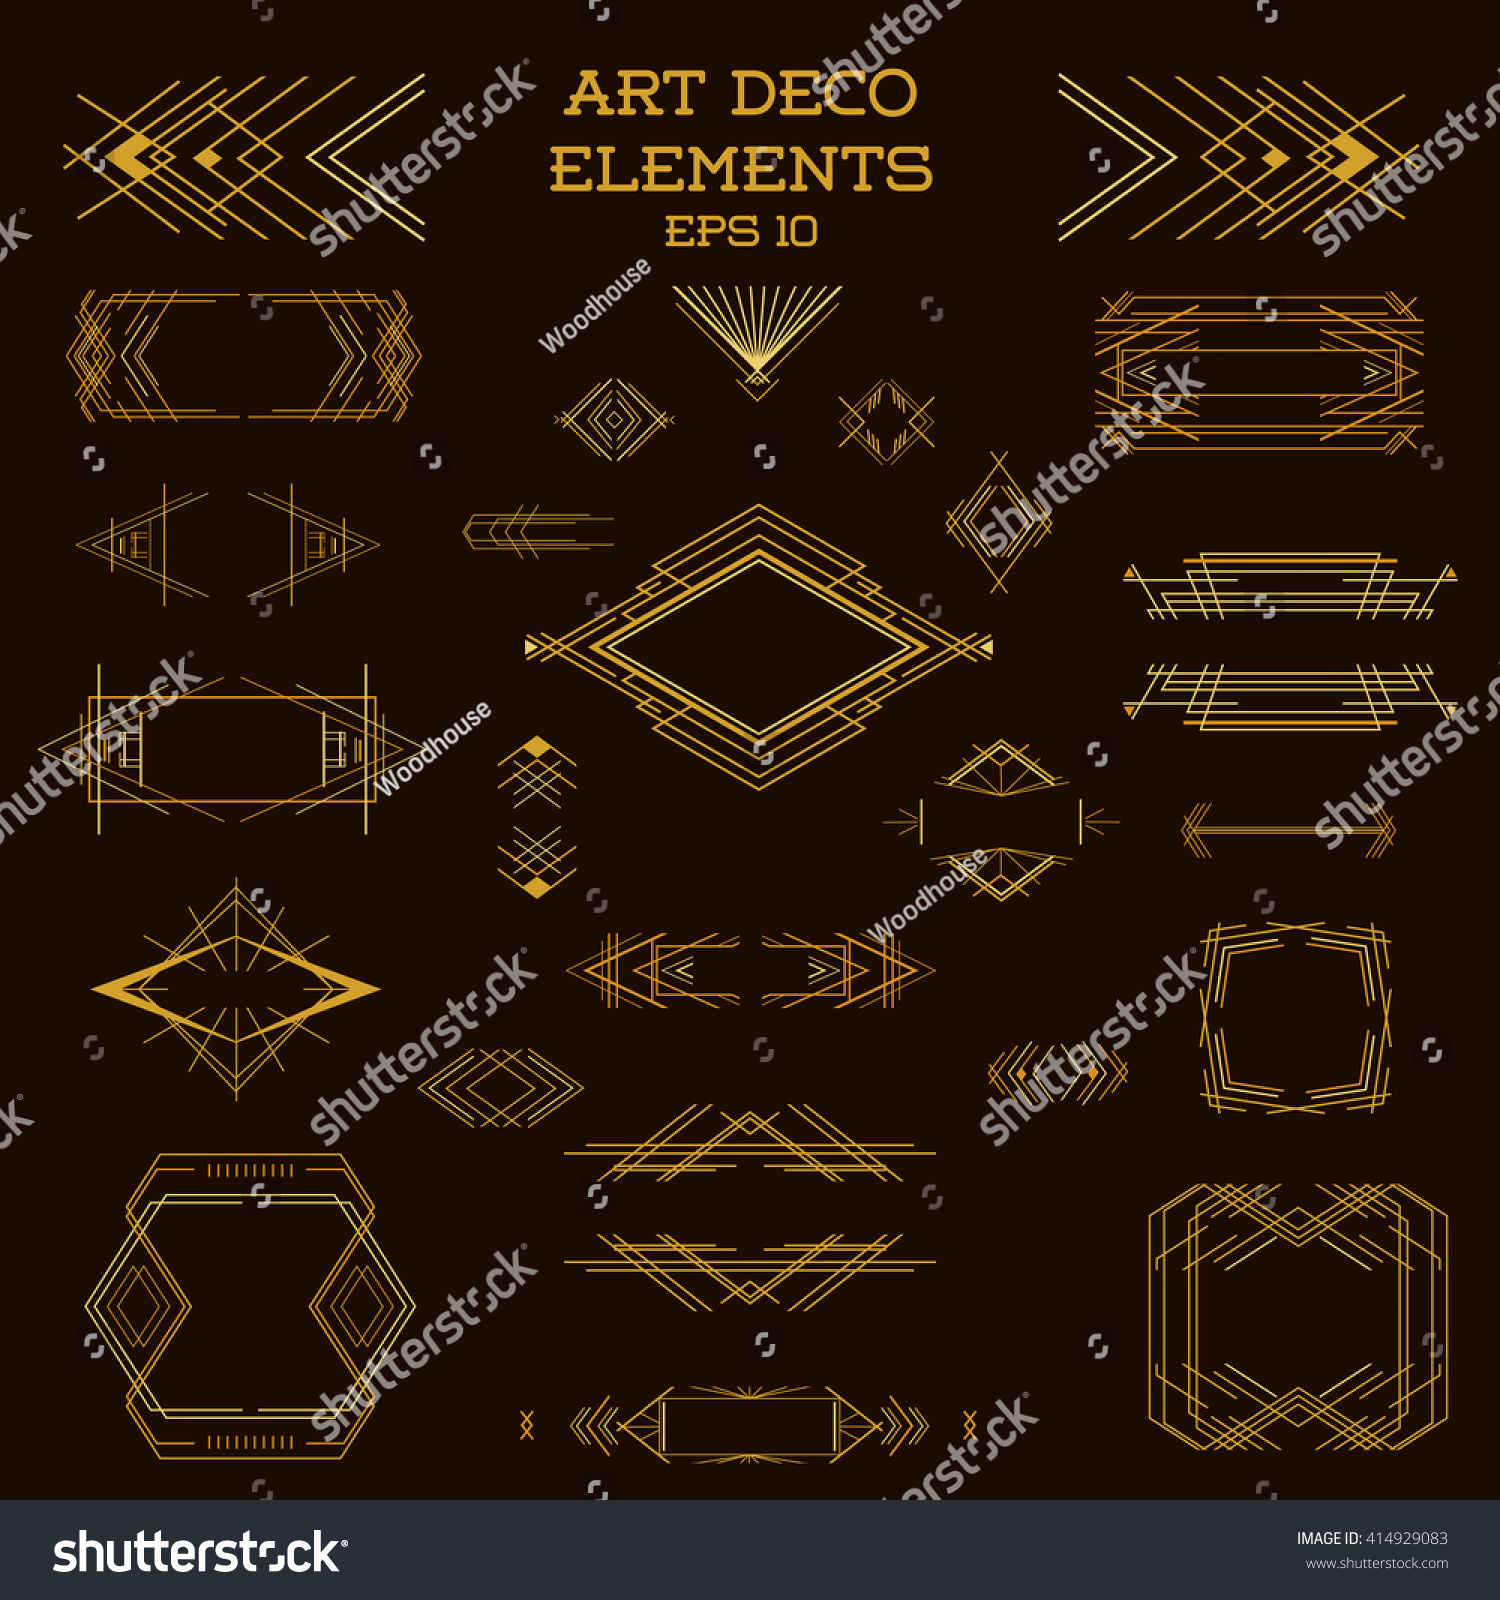 Art deco frame vintage design elements stock vector - Art deco design elements ...